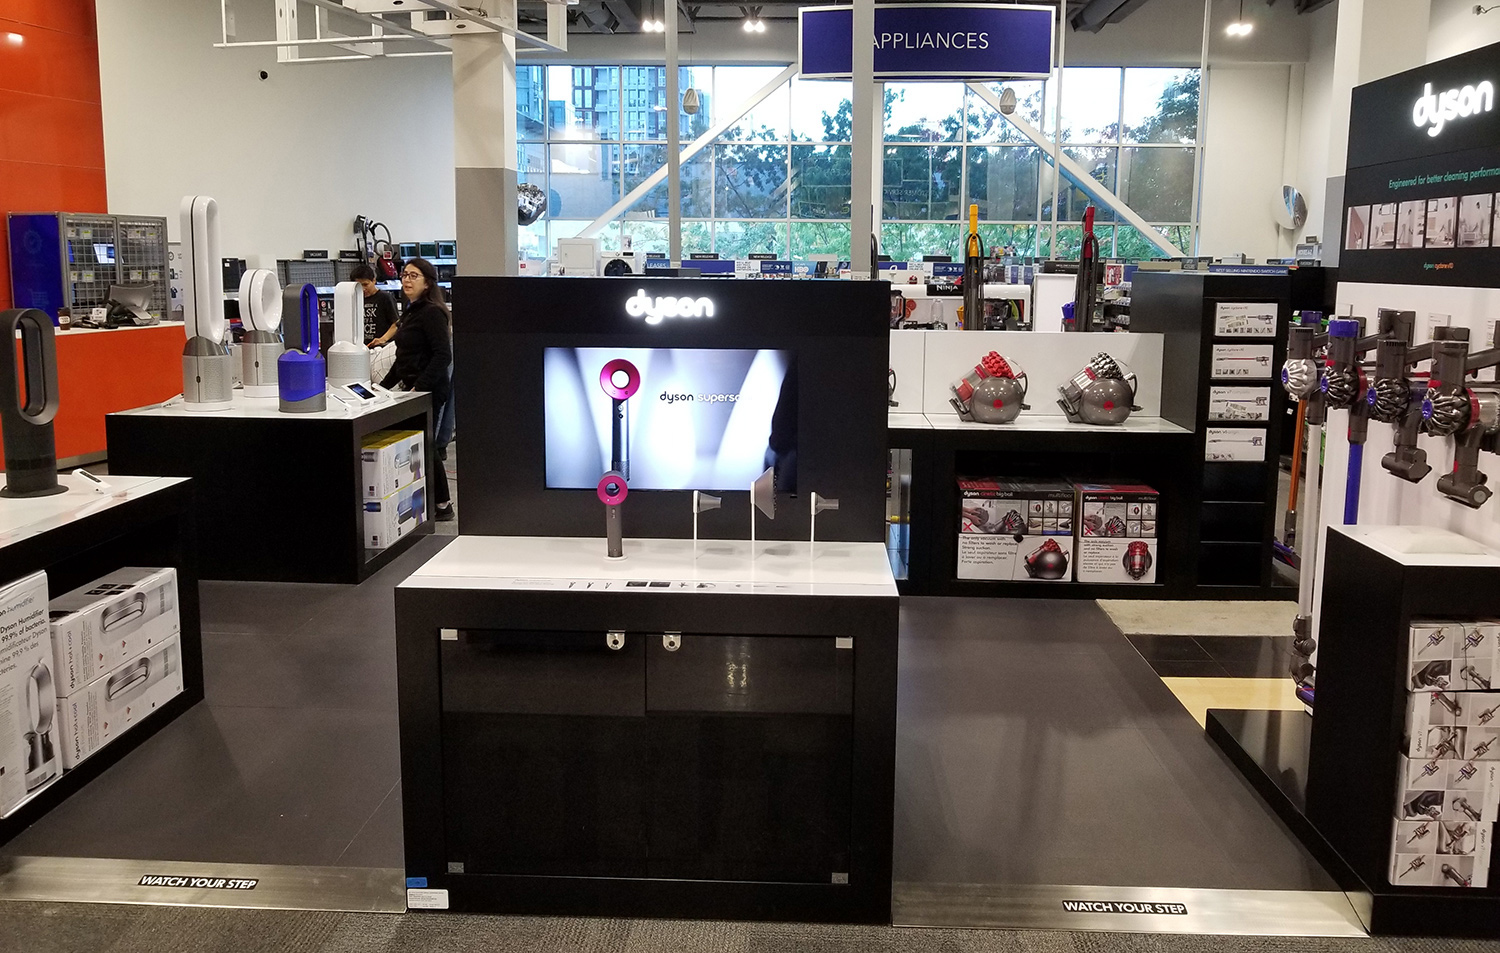 Announcing The Grand Opening Of Two Dyson Stores At Best